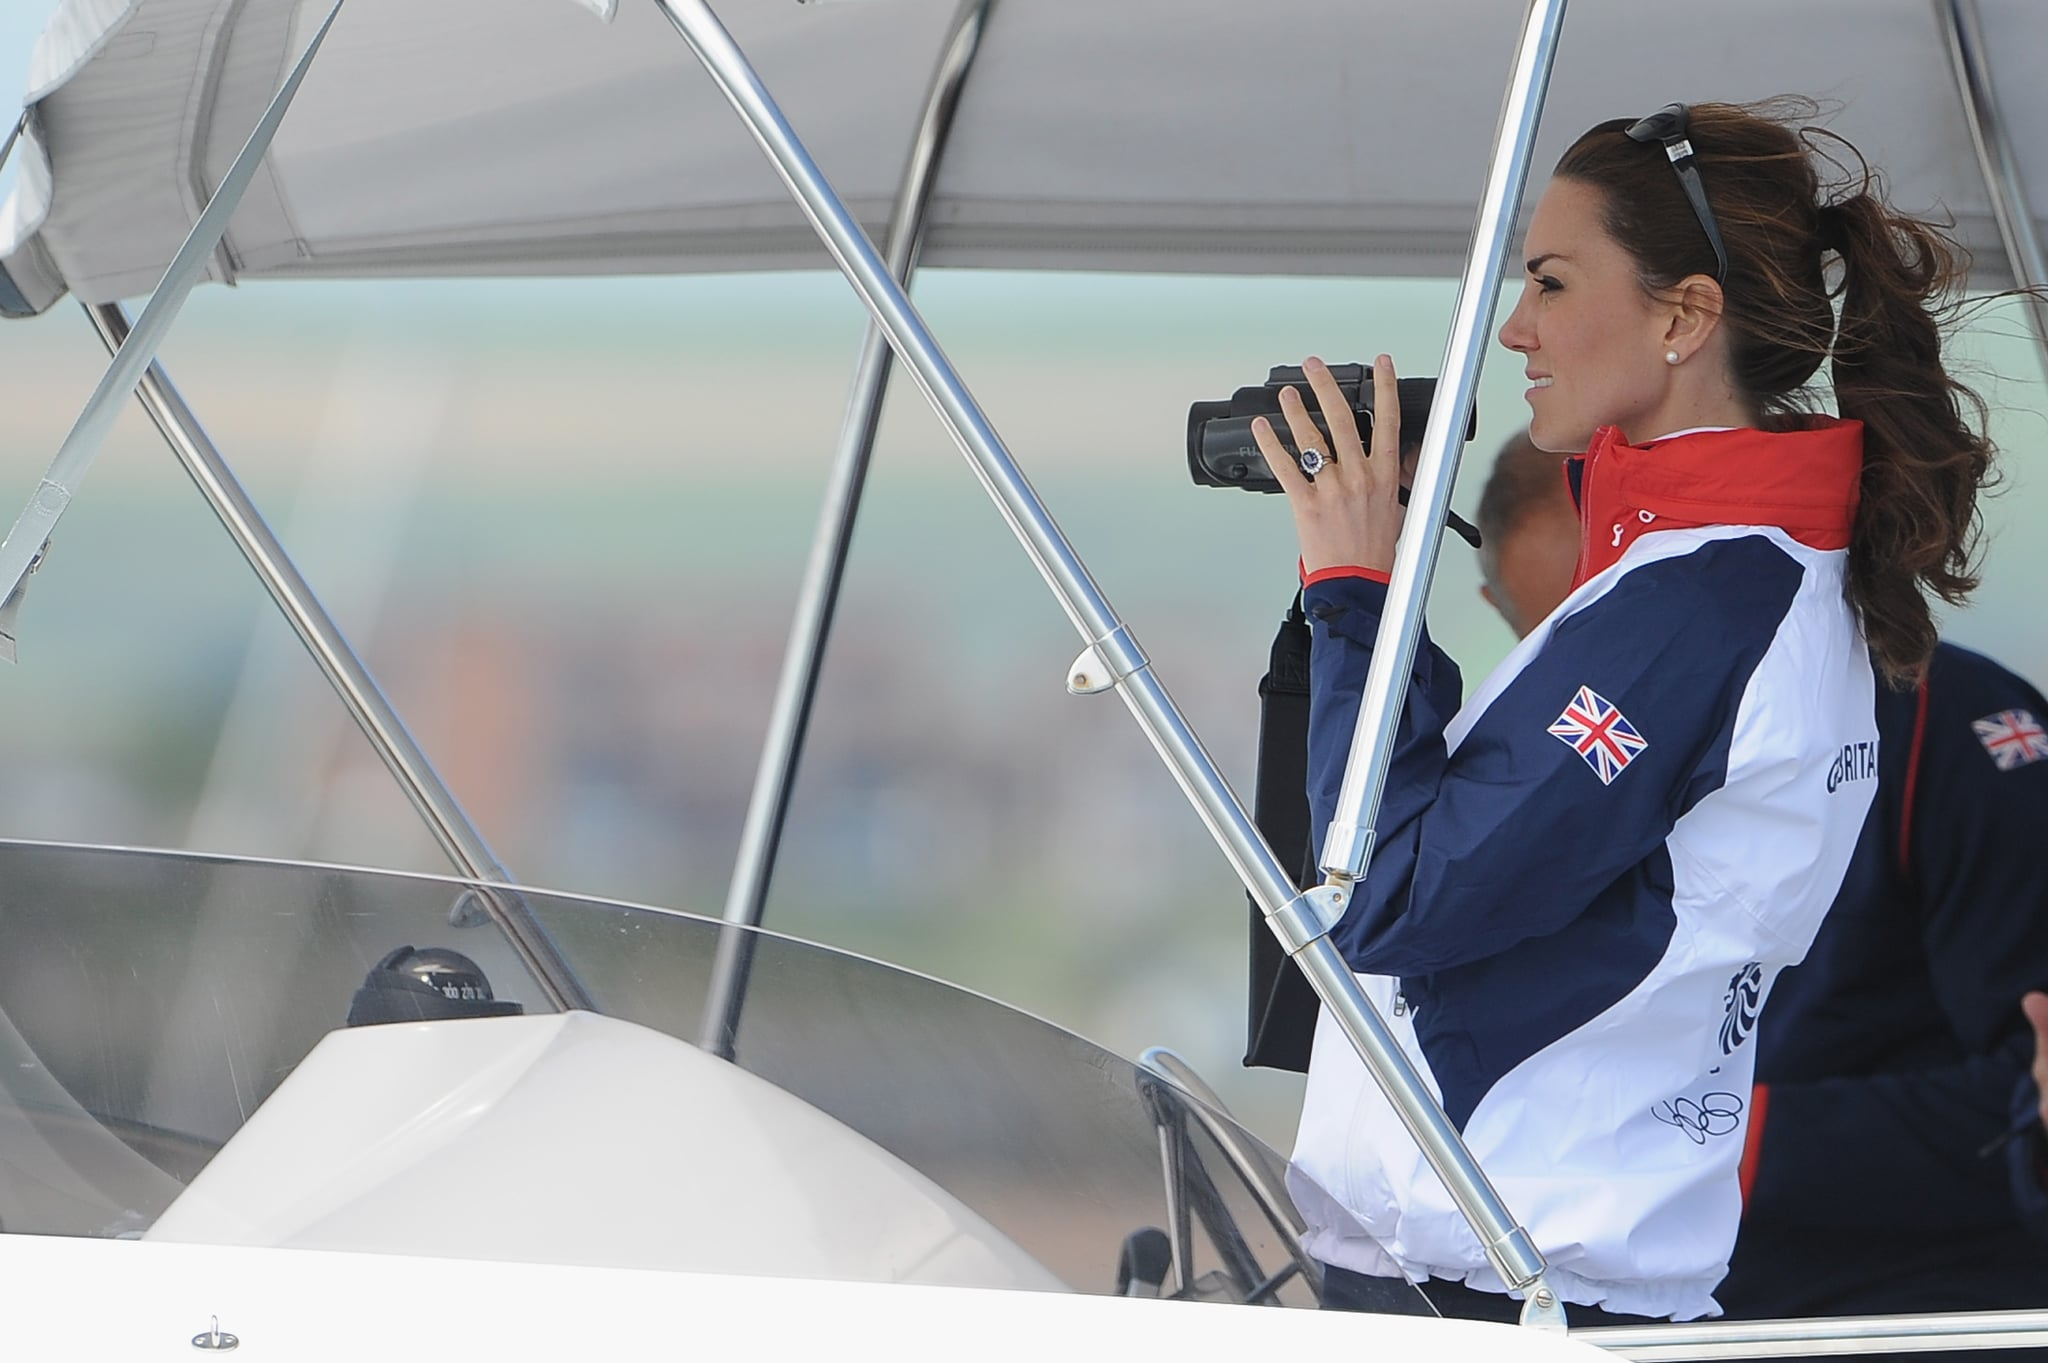 "Kate ""follows race sailing keenly"" and will have a chance to do some herself. According to an official briefing before the trip, Kate Middleton will do some competitive sailing on Friday, April 11. Their private secretary explained:  ""The couple will arrive at the Emirates Team New Zealand base and board a boat that will take them to two of the team's yachts — the Duke on one, the Duchess on the other. There will be a number of 'informal' match races between the two racing yachts. As everyone probably knows, however, the Duke and Duchess are just a little competitive.""  They're spending Easter at the zoo.  The royal family will attend Easter service at St. Andrew's Cathedral in Sydney and then travel to Taronga Zoo. The Australian government made a donation to the zoo's bilby-preservation program on the occasion of George's birth, so we're hoping for an appearance by the little prince.  It's not all business.  There are various days carved out as private time for the young Cambridge family. While there are public events schedule for Easter, for example, Easter Monday (April 21) is a day they'll spend alone. It's also a public holiday in Australia."